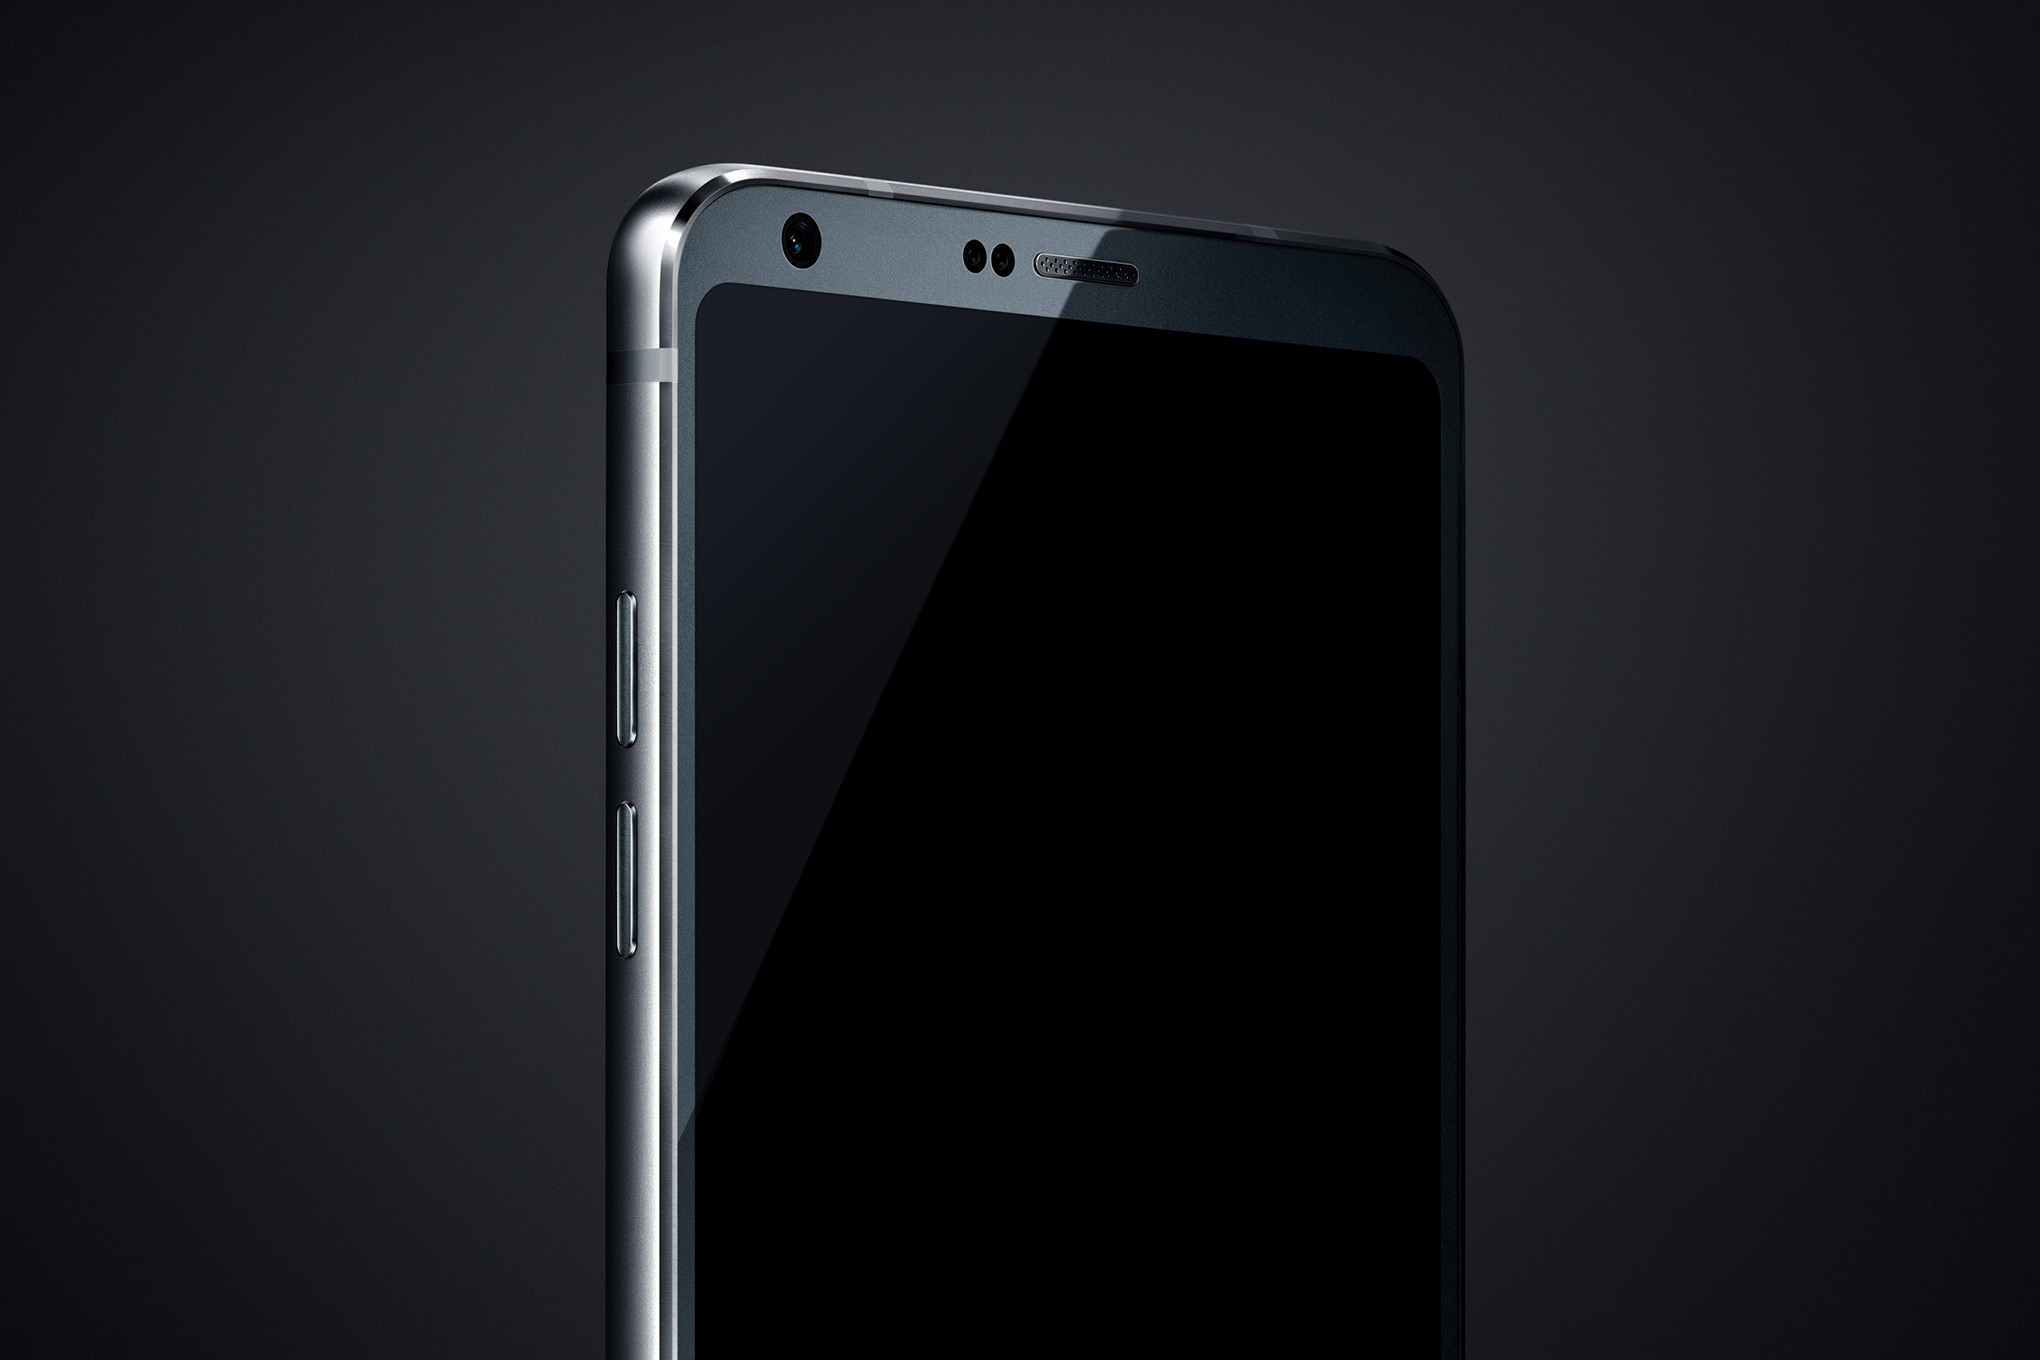 LG G6 official photo leaked ahead of MWC 2017 launch